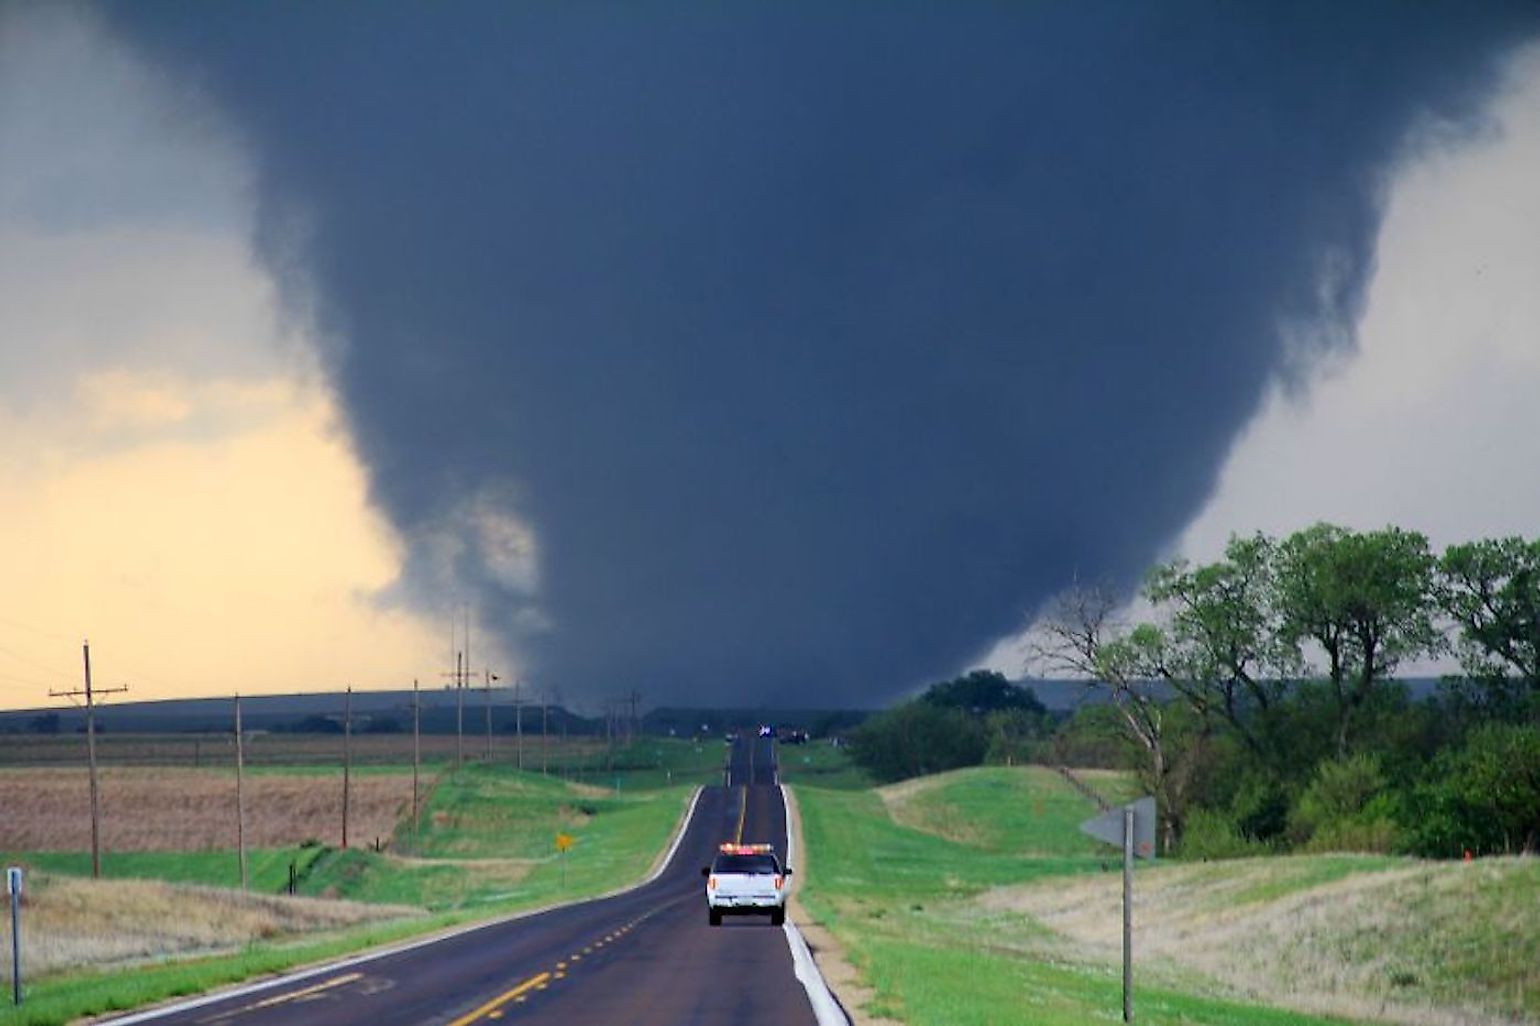 One of several violent tornadoes that touched down across Kansas on April 14, 2012. This particular tornado was located 5 miles west of Marquette, Kansas and was rated EF4. Image credit: Will Campbell/Public domain